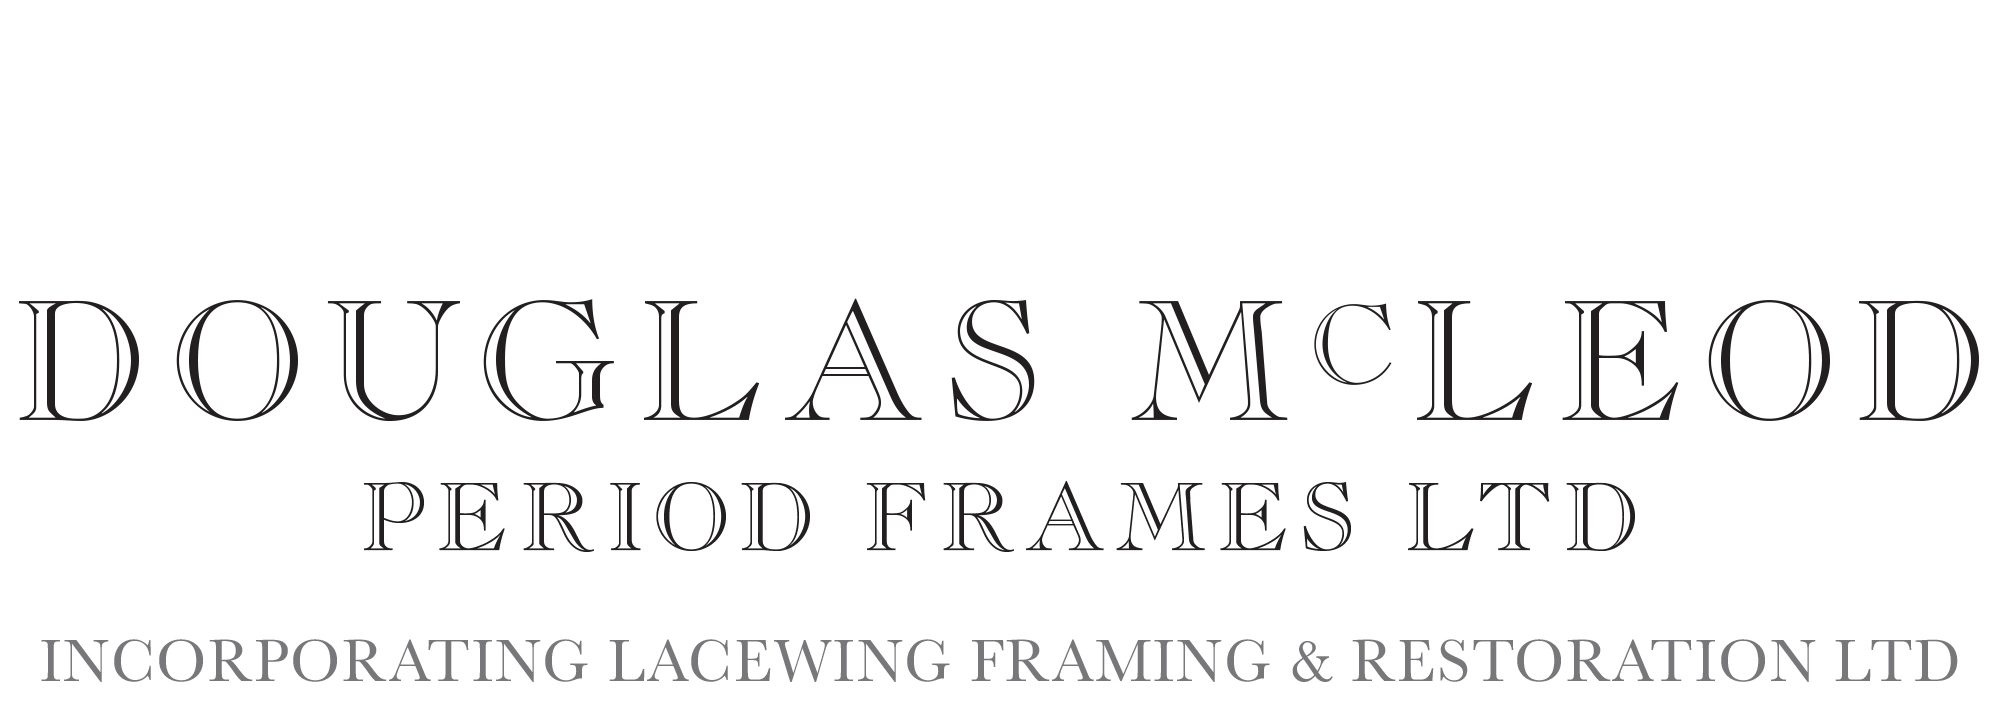 Douglas McLeod Period Frames Ltd